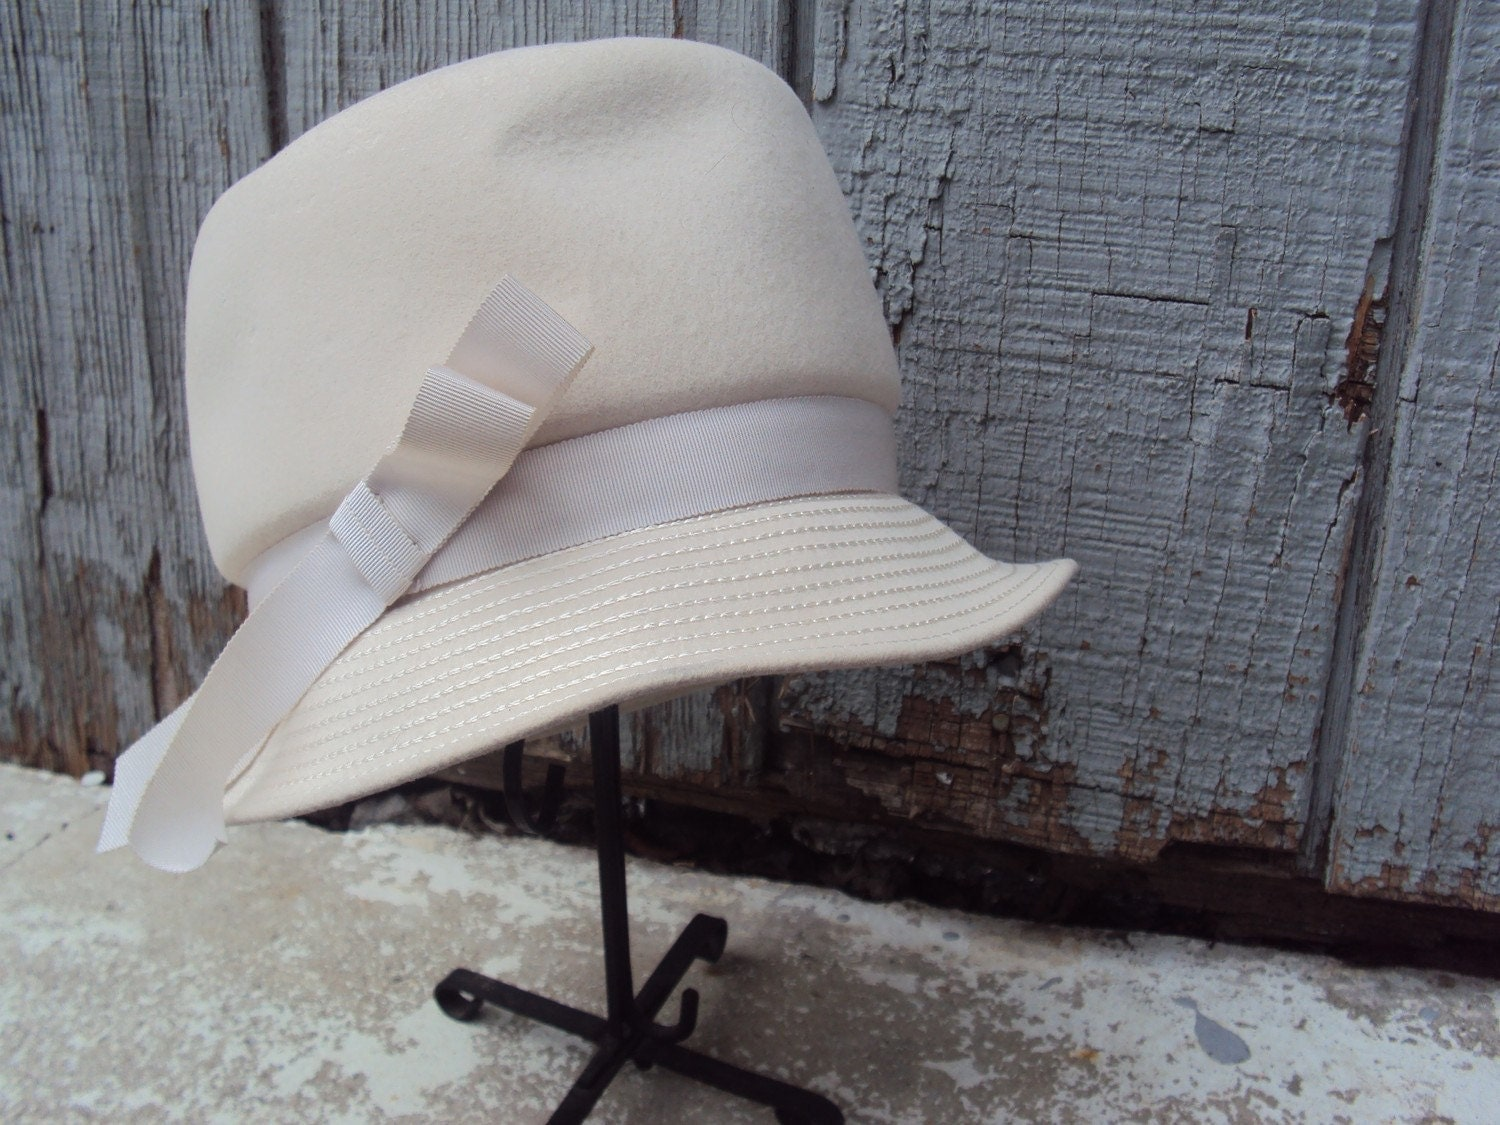 Vintage Cream Cloche Hat, Designer Wool Hat, Mad Men Style, Signed Henry Pollack Ritz - YesterdaysSilhouette